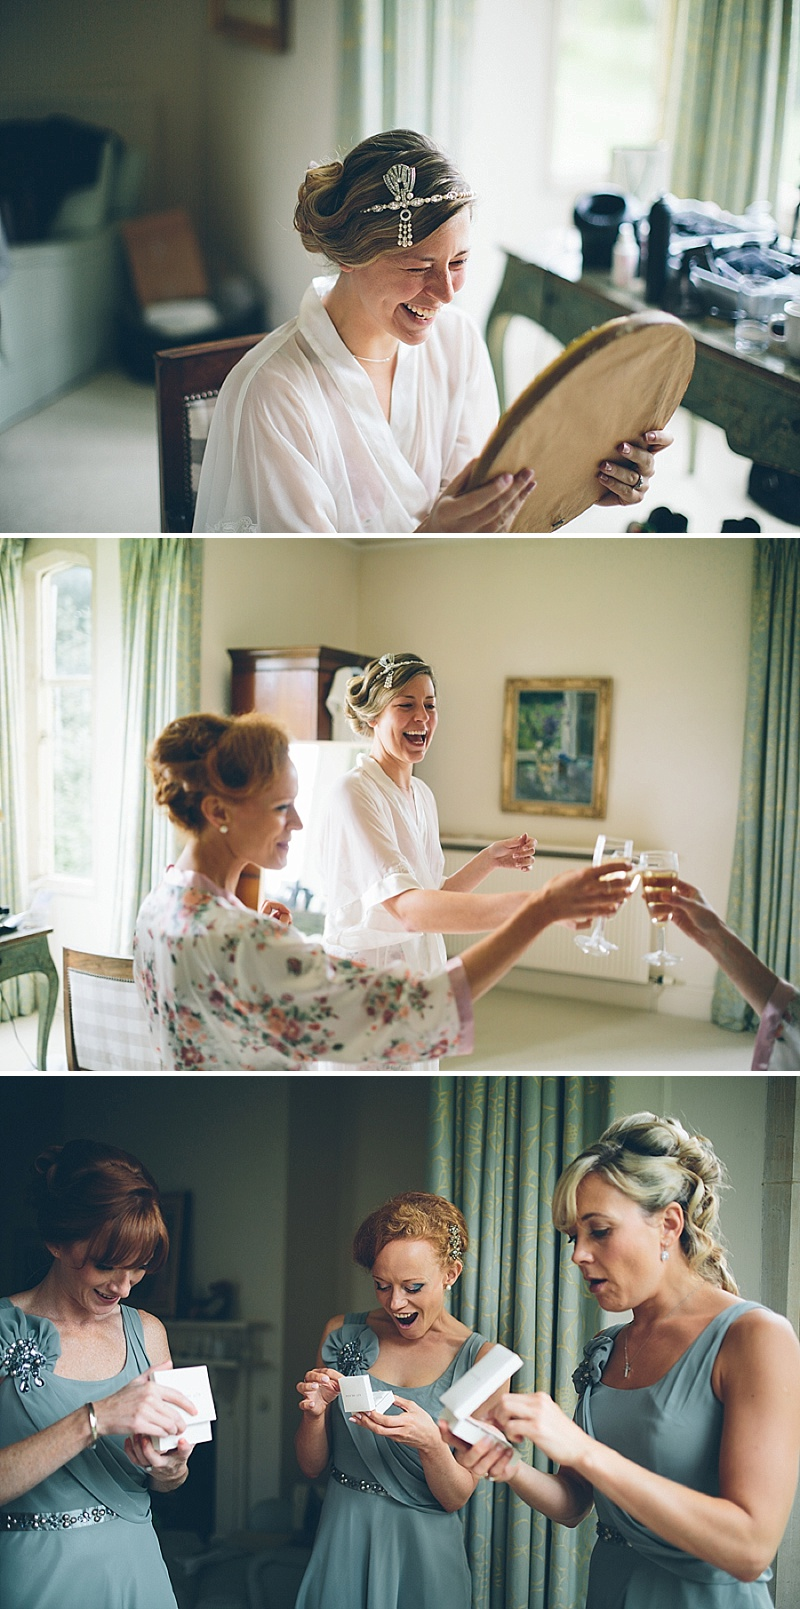 Art Deco and 1920s Inspired Wedding At The Matara Centre Gloucestershire With Bride In Joy By Jenny Packham and Bridesmaids in No 1 by Jenny Packham At Debenhams With Vintage Details and Speakeasy Themed Cocktails 2